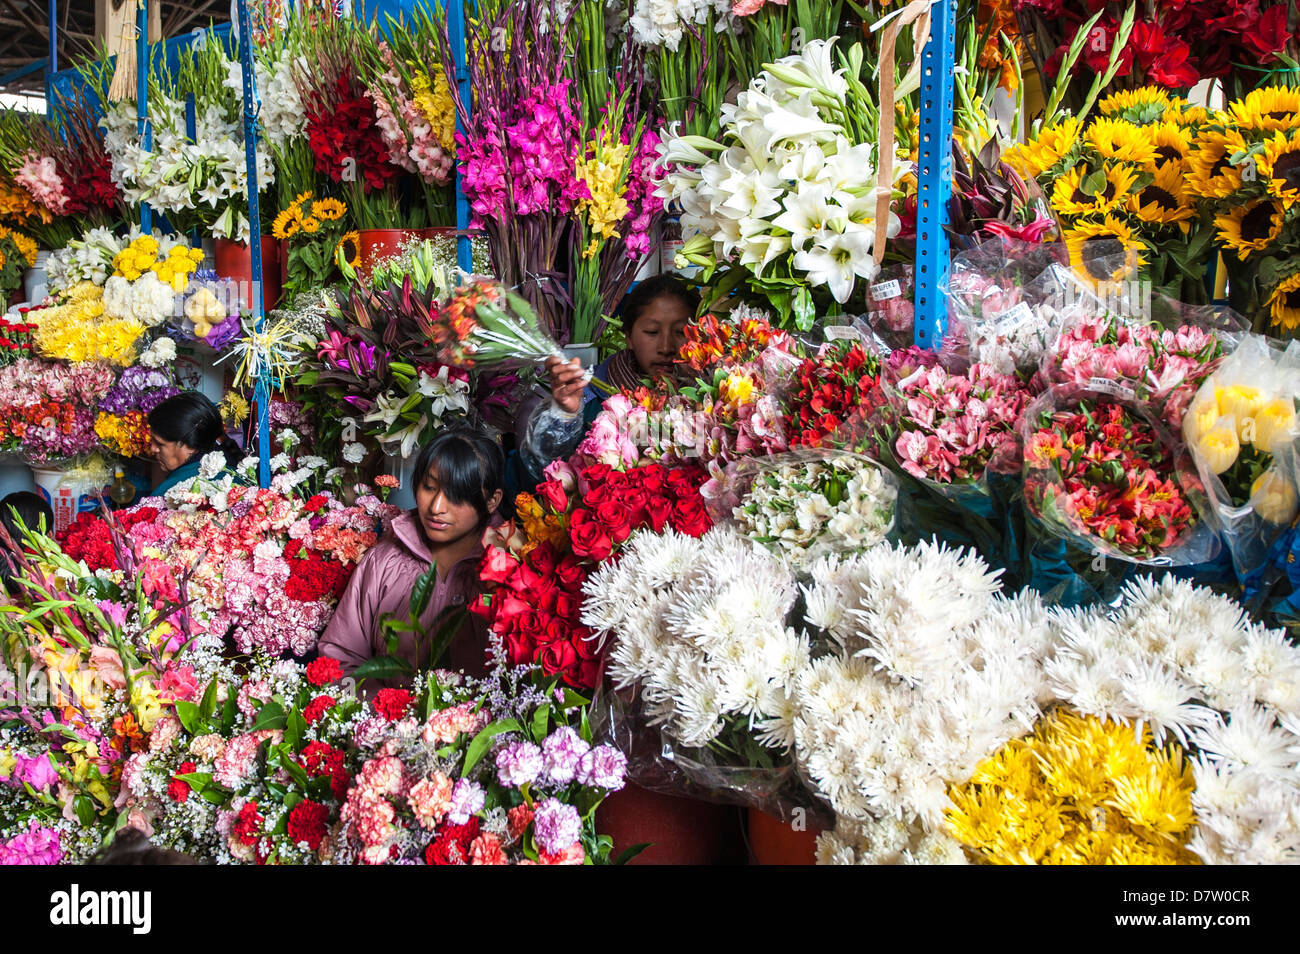 Flowers in local market Cuzco, Peru, South America - Stock Image